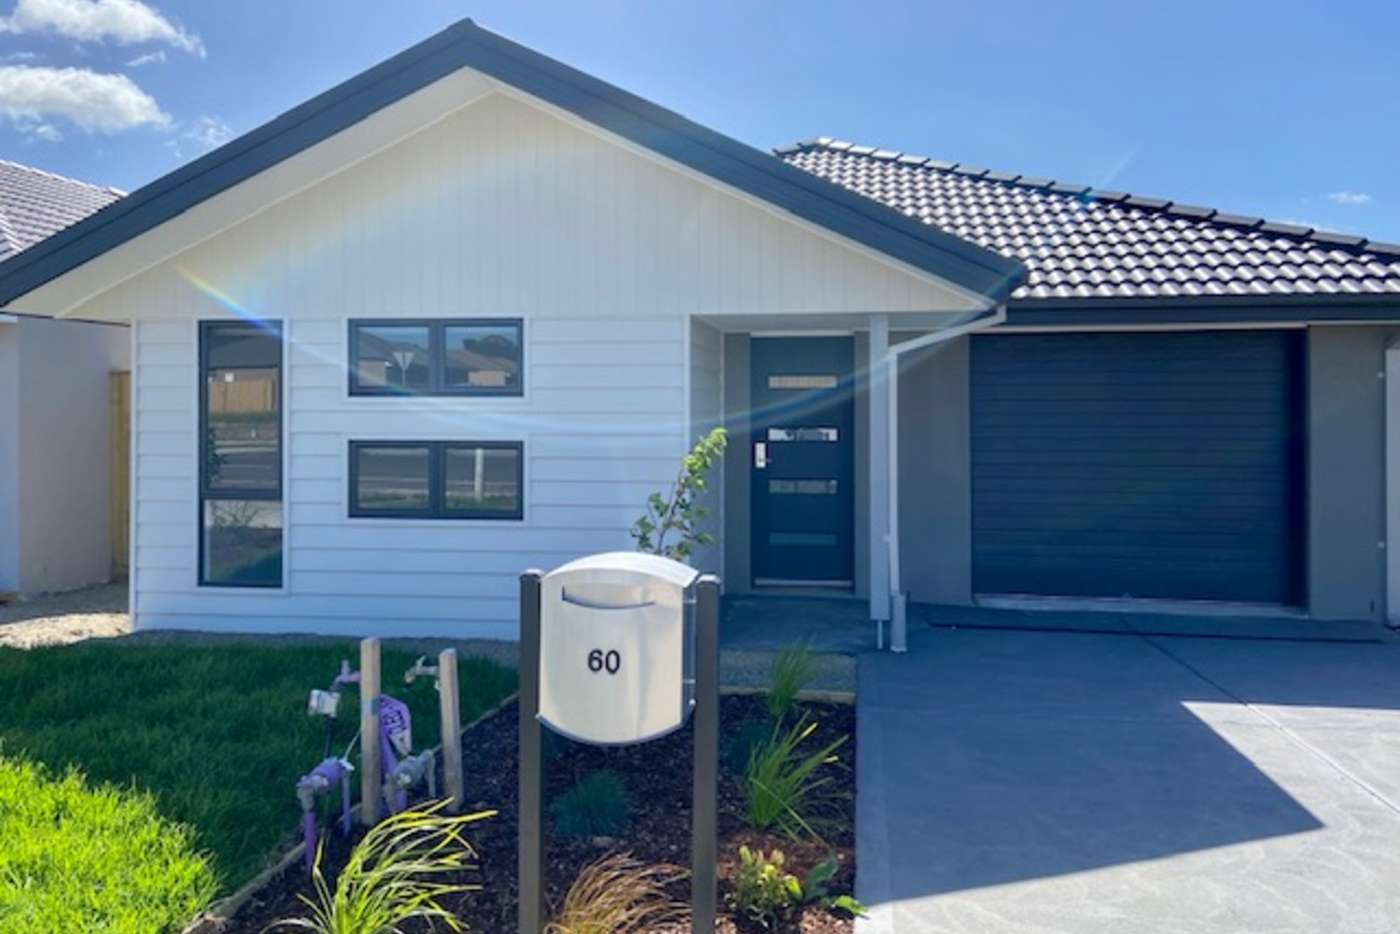 Main view of Homely house listing, 60 Annabella Street, Cranbourne East VIC 3977